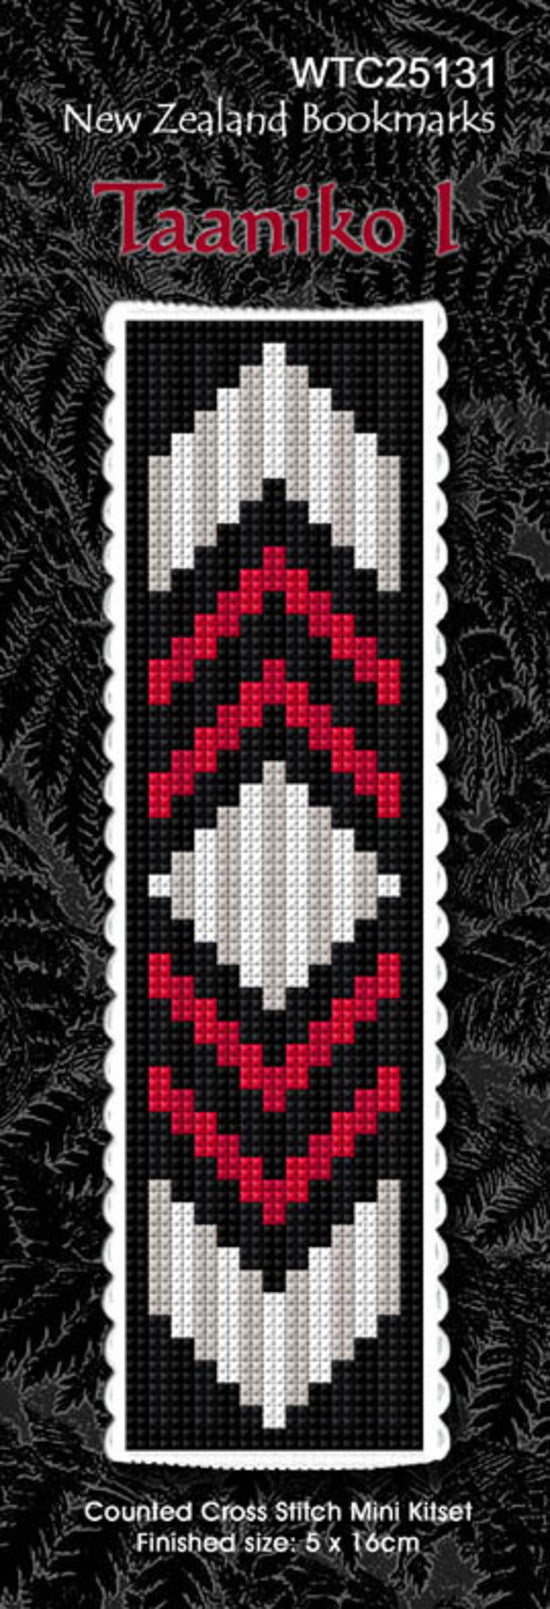 Cross-stitch bookmark - Taaniko 1